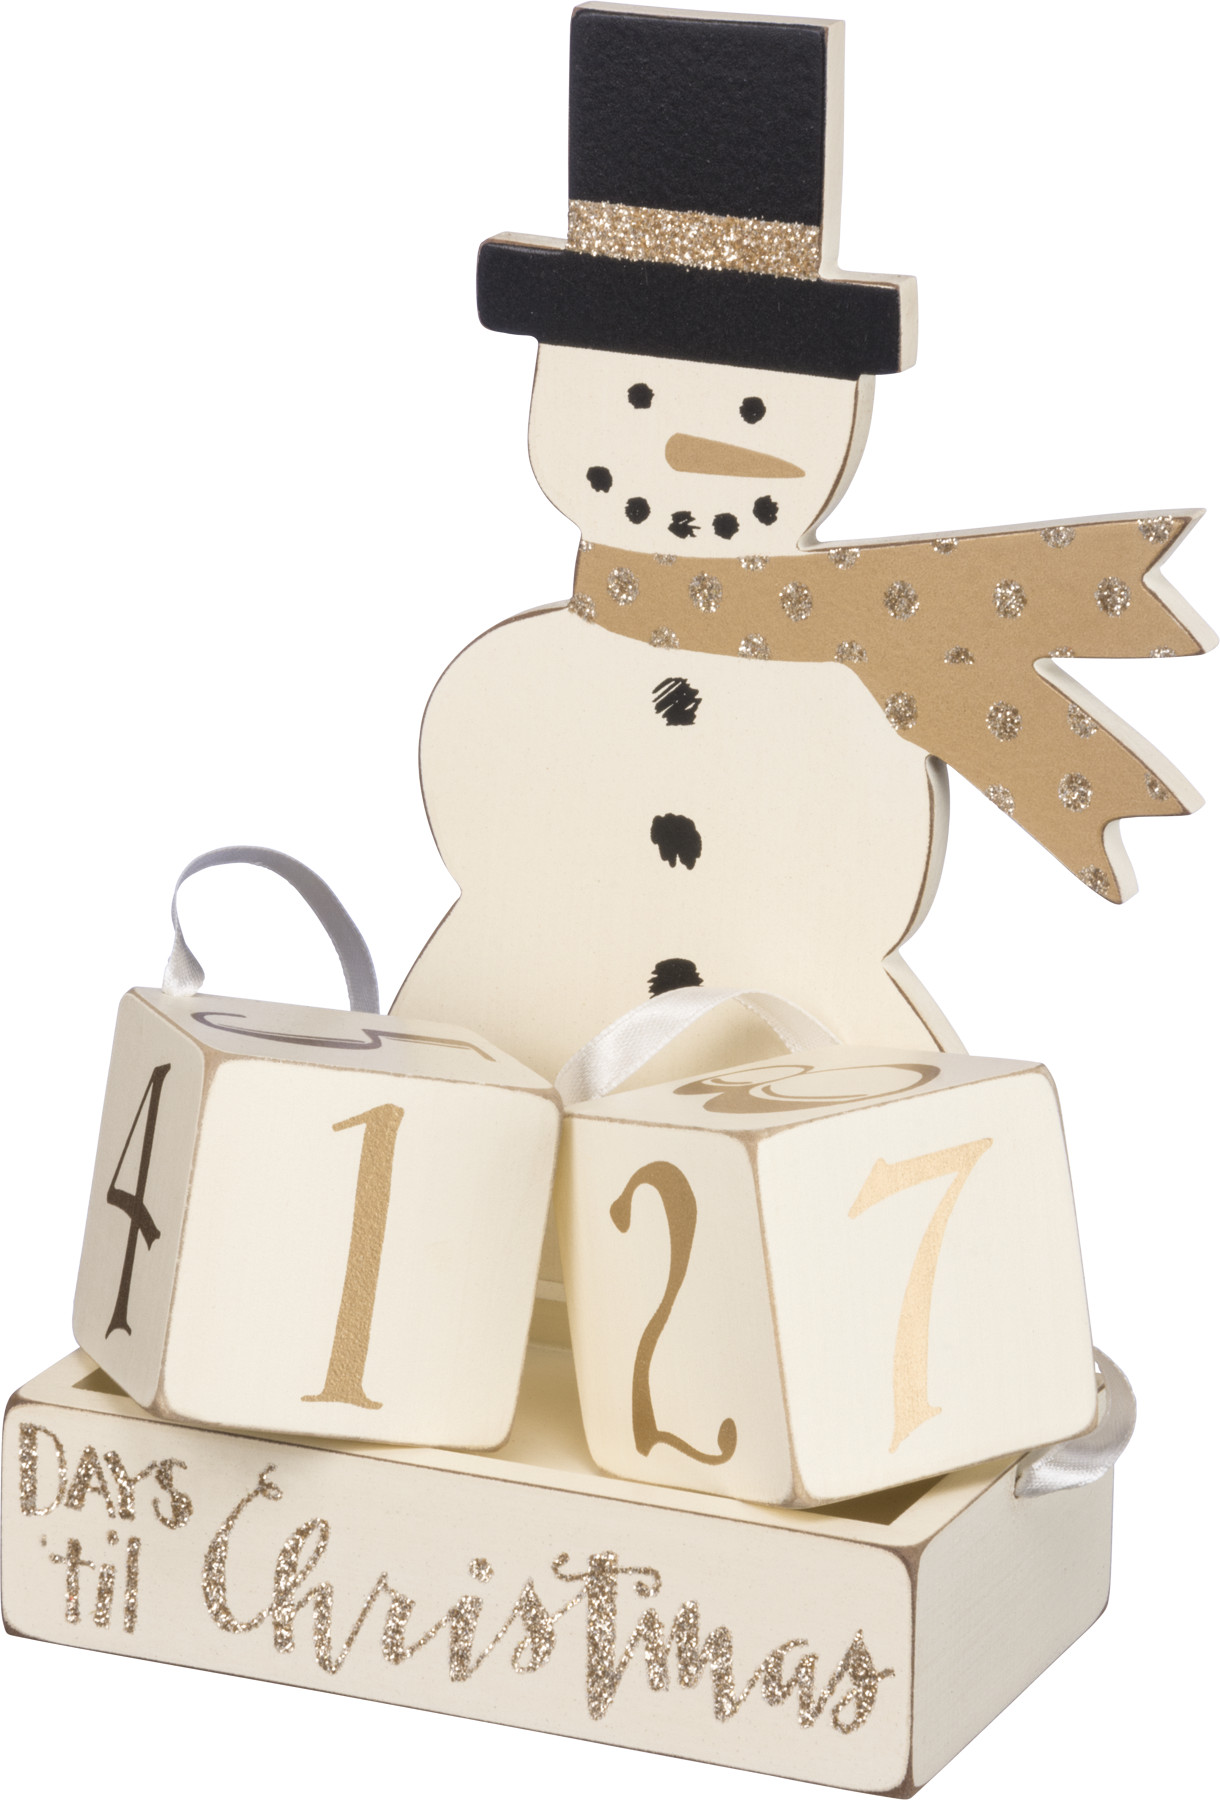 Snowman Tophat Days Til Christmas Decorative Wooden Block Countdown Sign From Primitives By Kathy